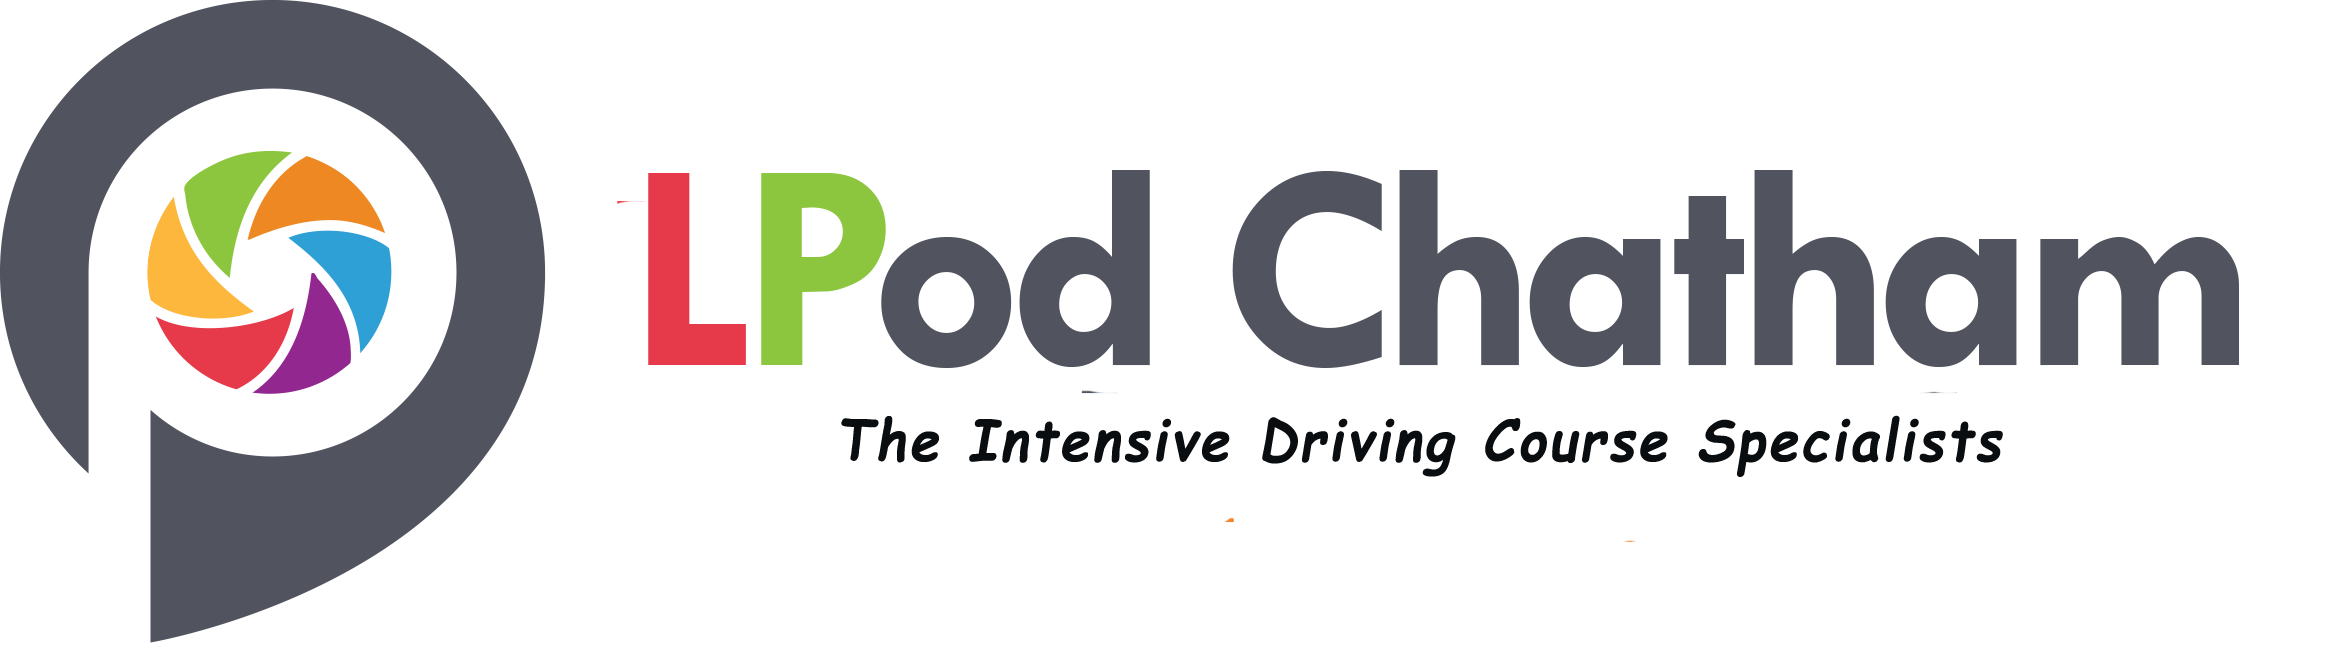 intensive driving courses chatham